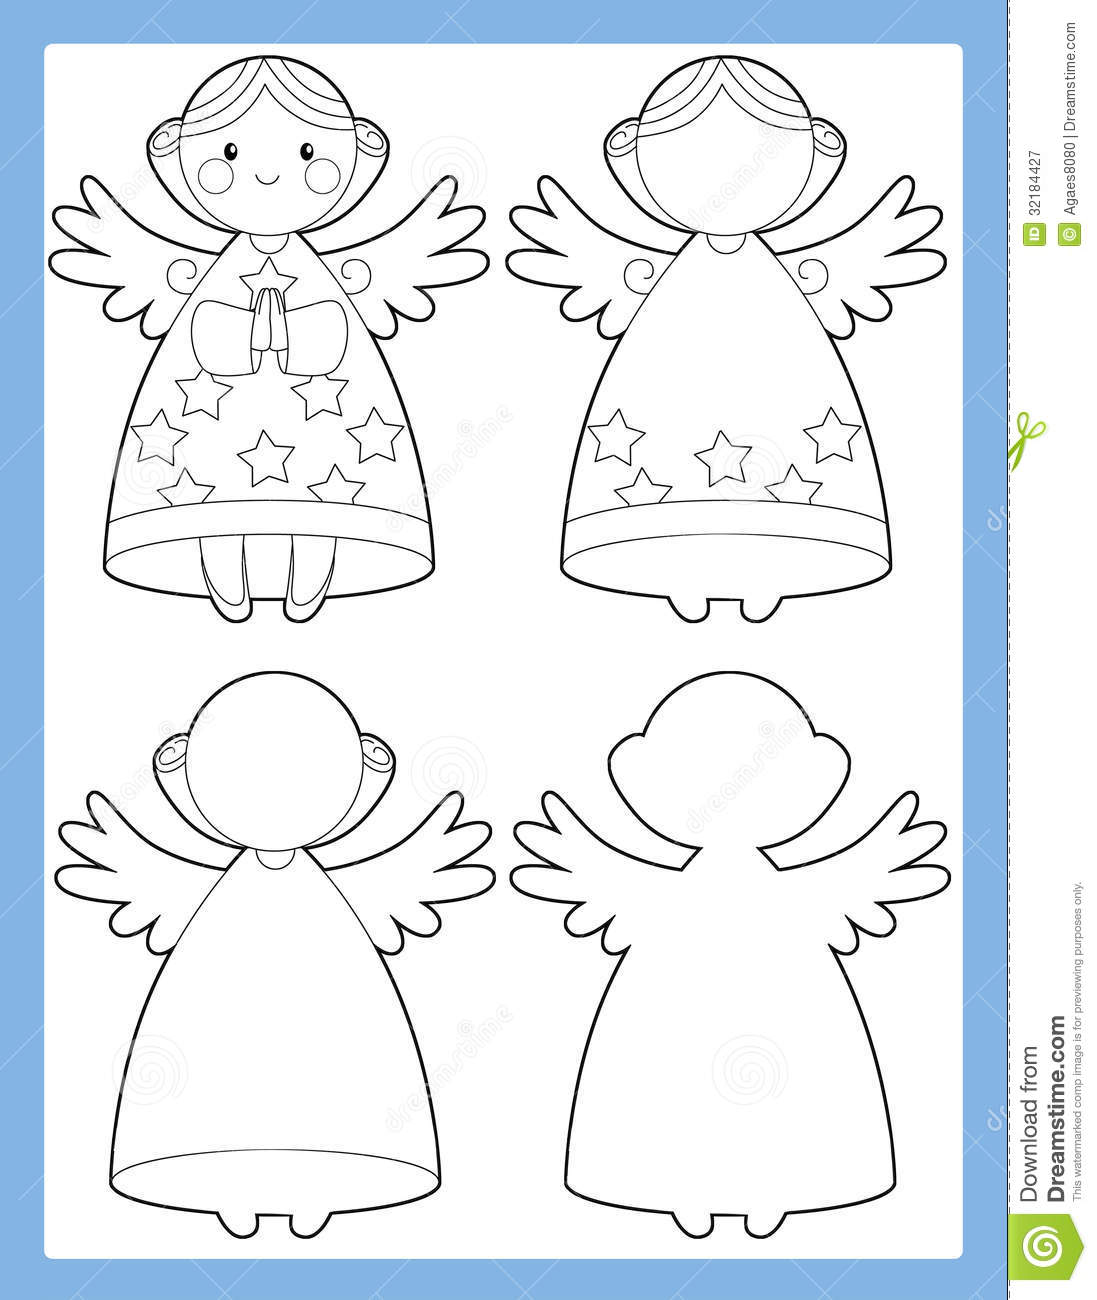 the coloring page with connecting elements illustration for the